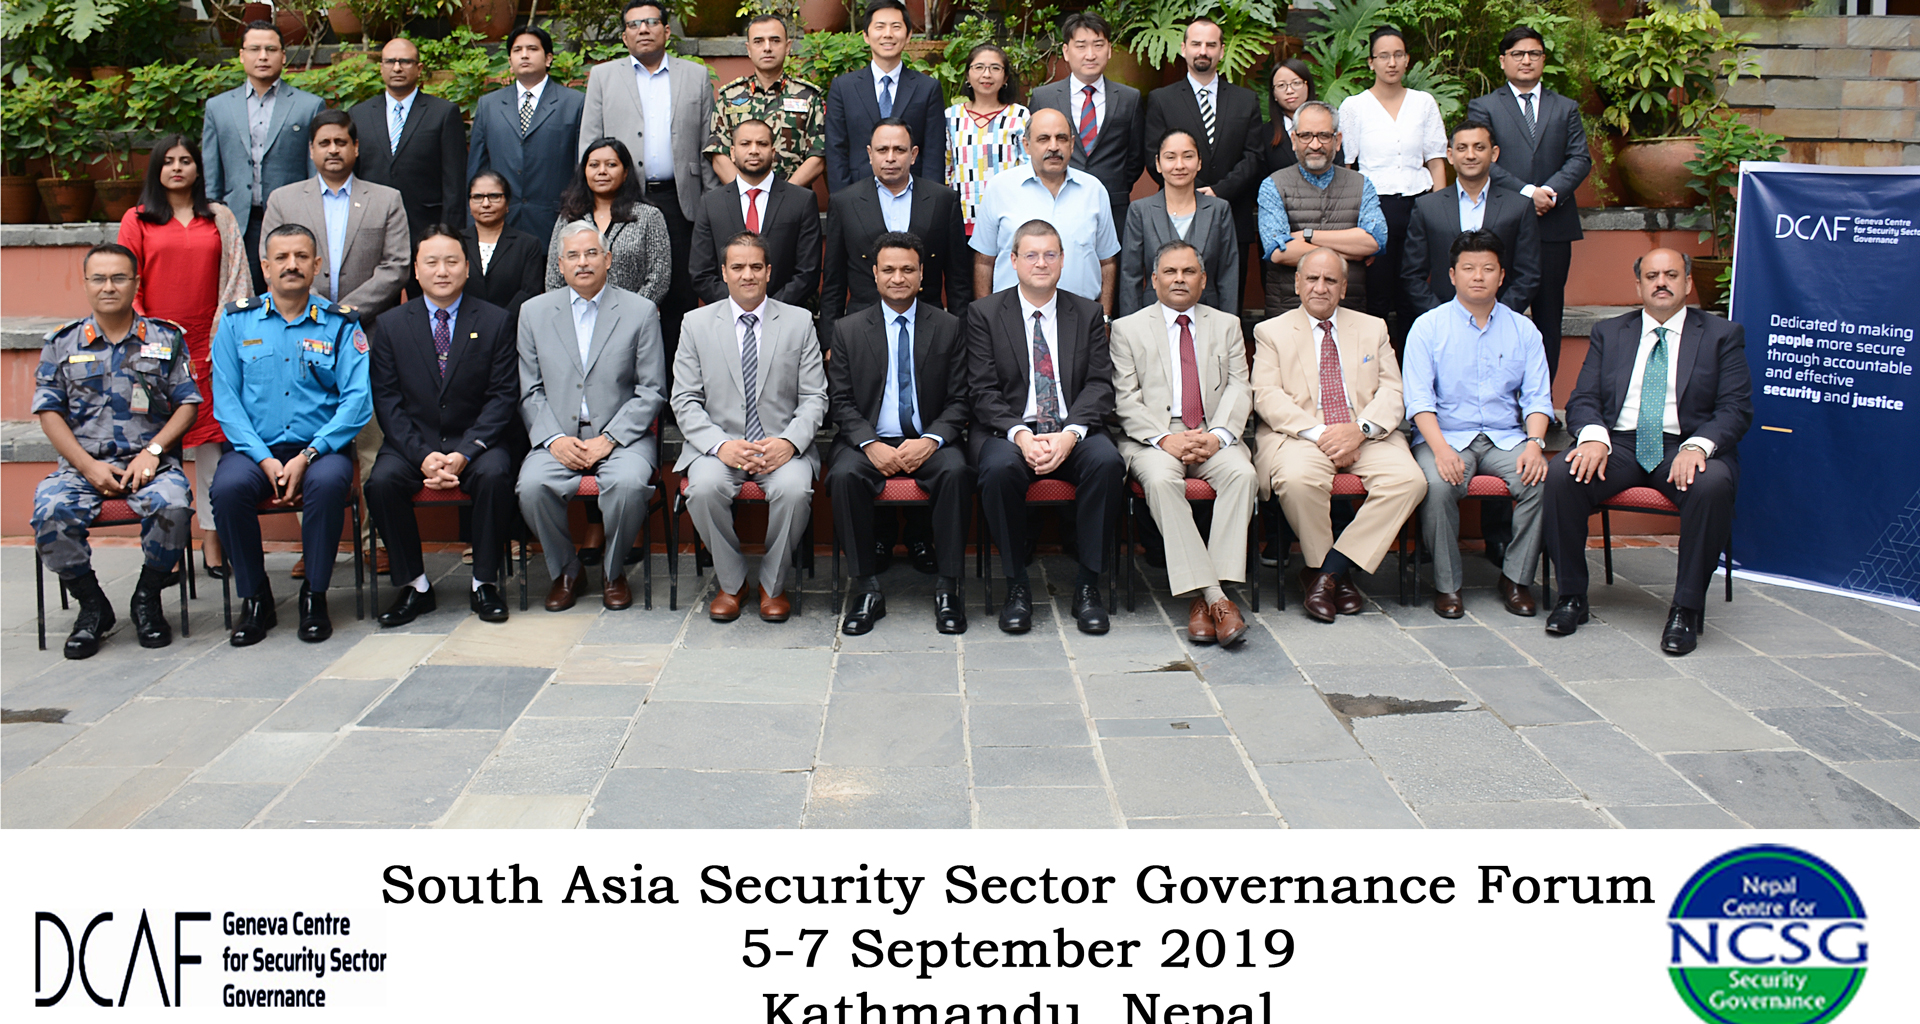 Nepal Center for Security Governance (NCSG)